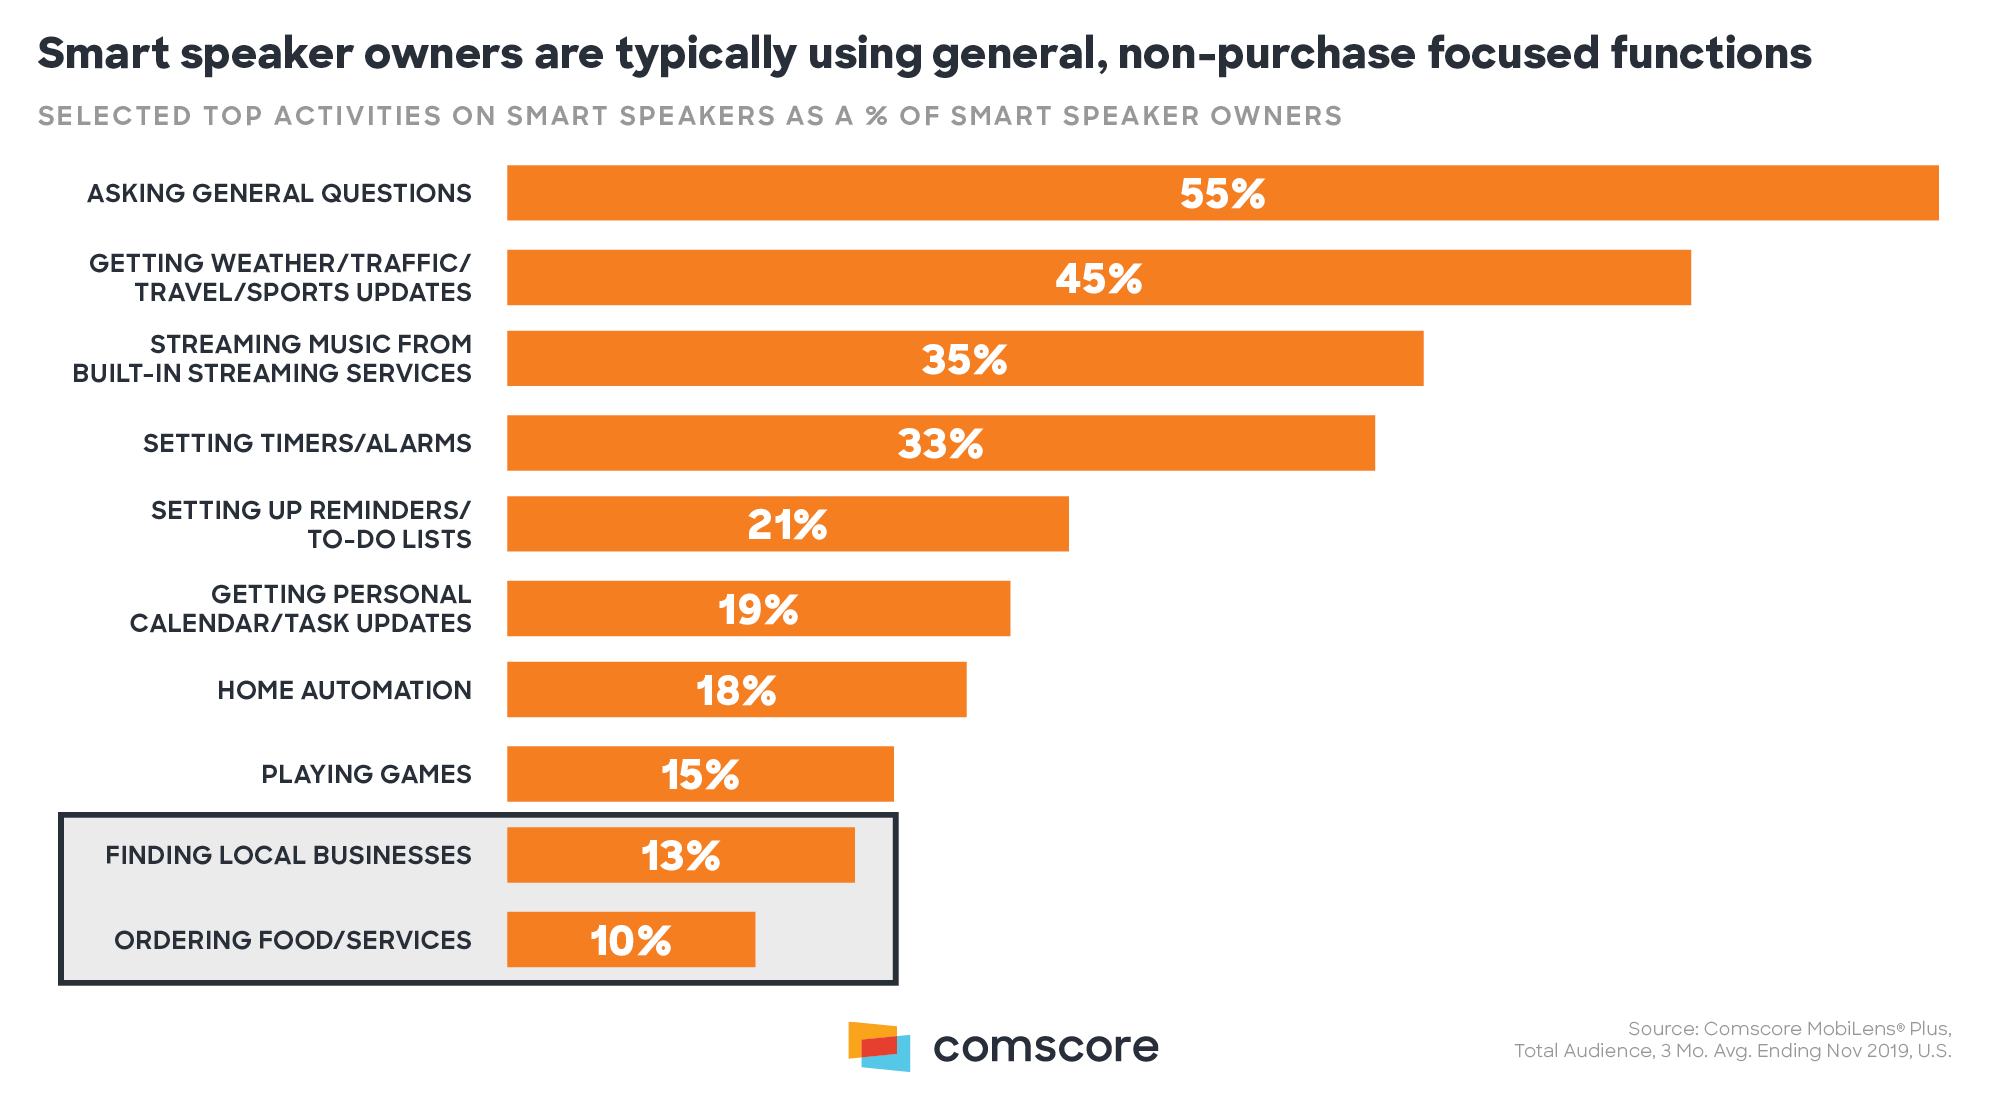 Smart Speaker Owners Are Typically Using General Non-Purchase Focused Functions